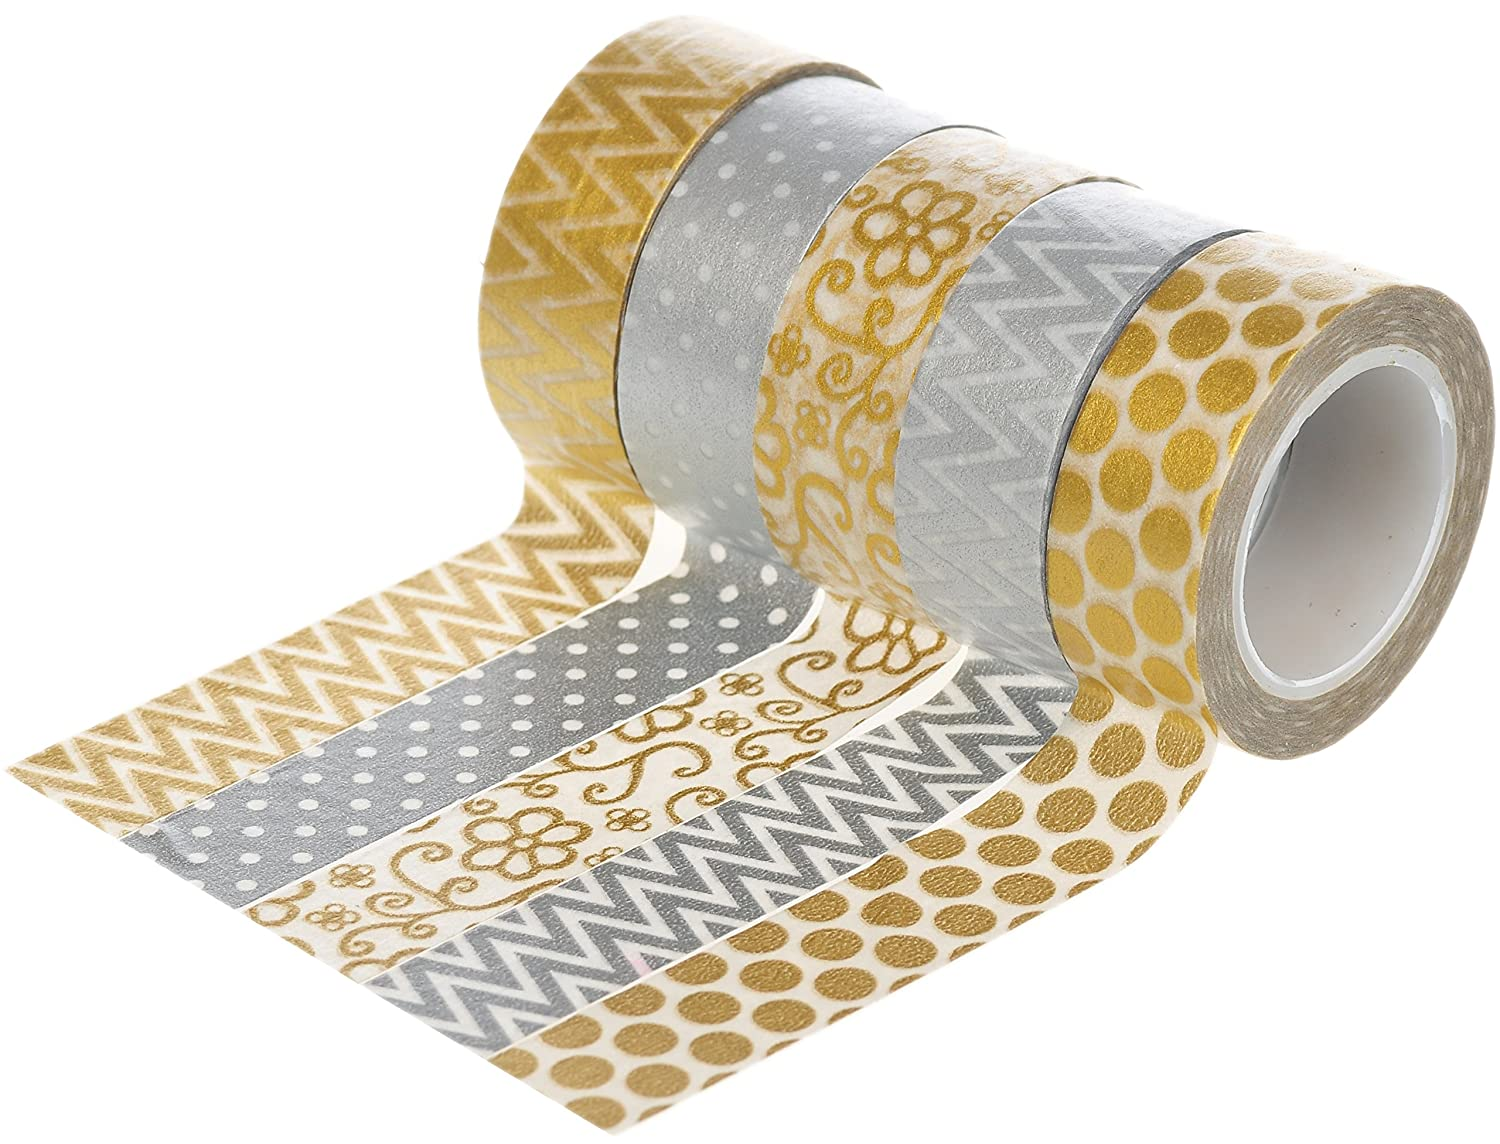 HIART Repositionable Goddess Washi Tape Goddess Repositionable (Set of 5), Oro/Plata by a43d07